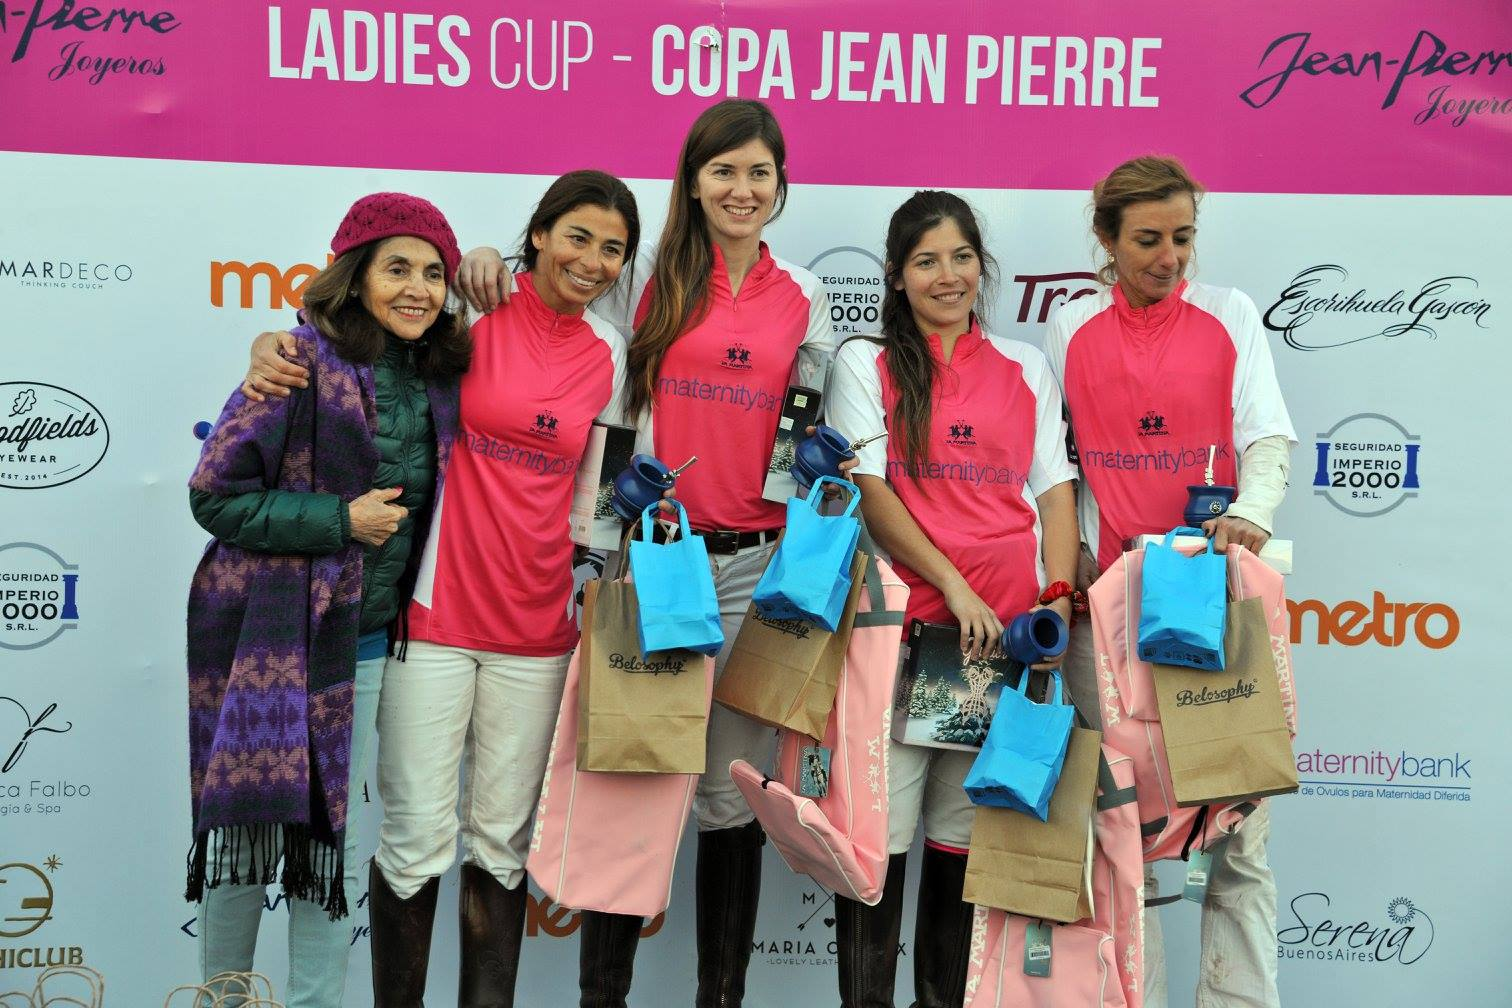 LaProvidencia-LadiesCup-MaternityBank